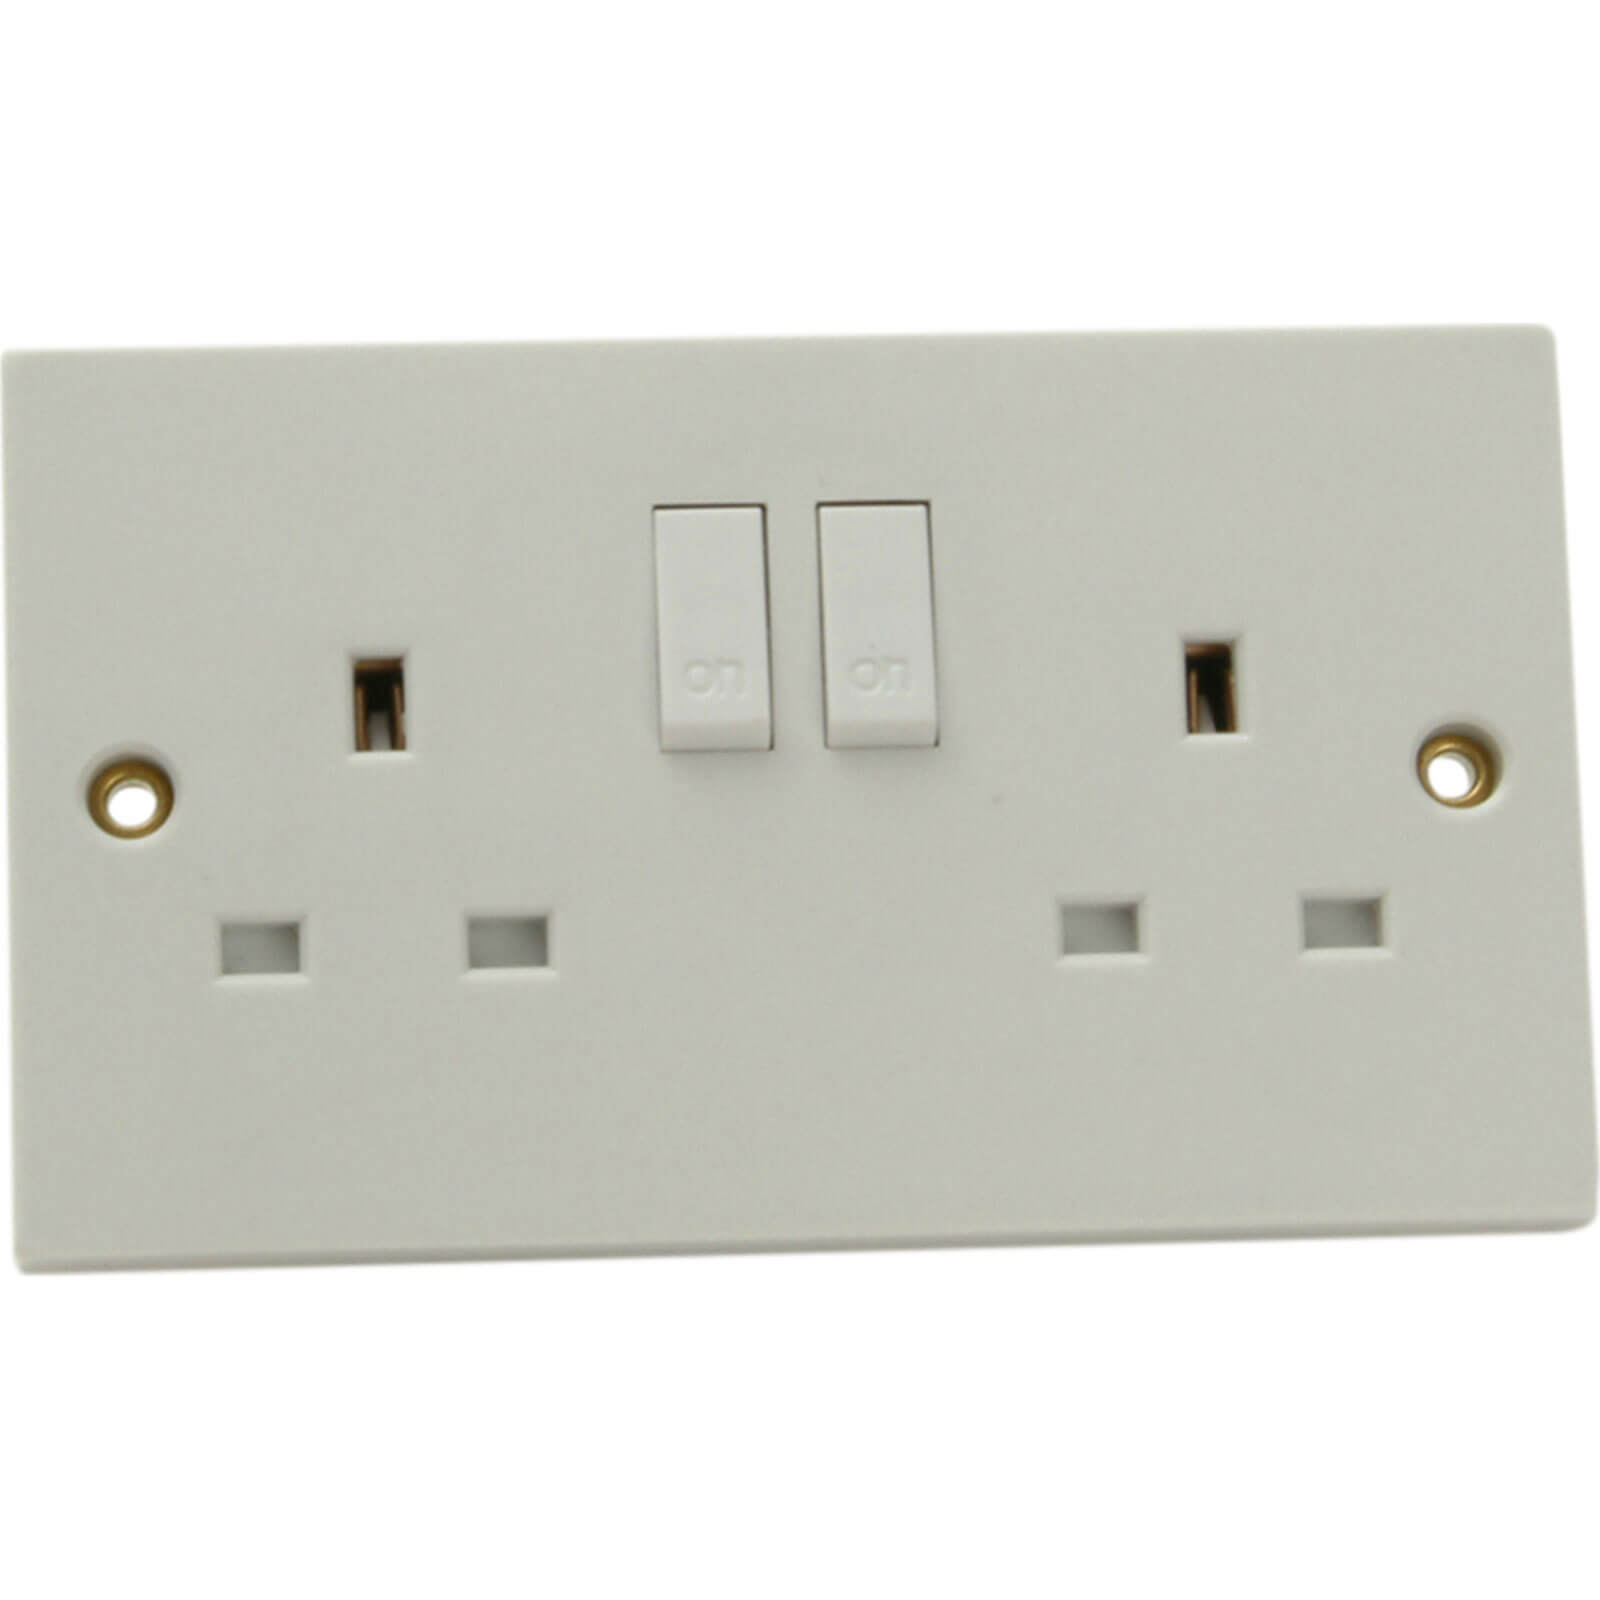 Image of Smj 2 Gang 13Amp Switched Socket 240v